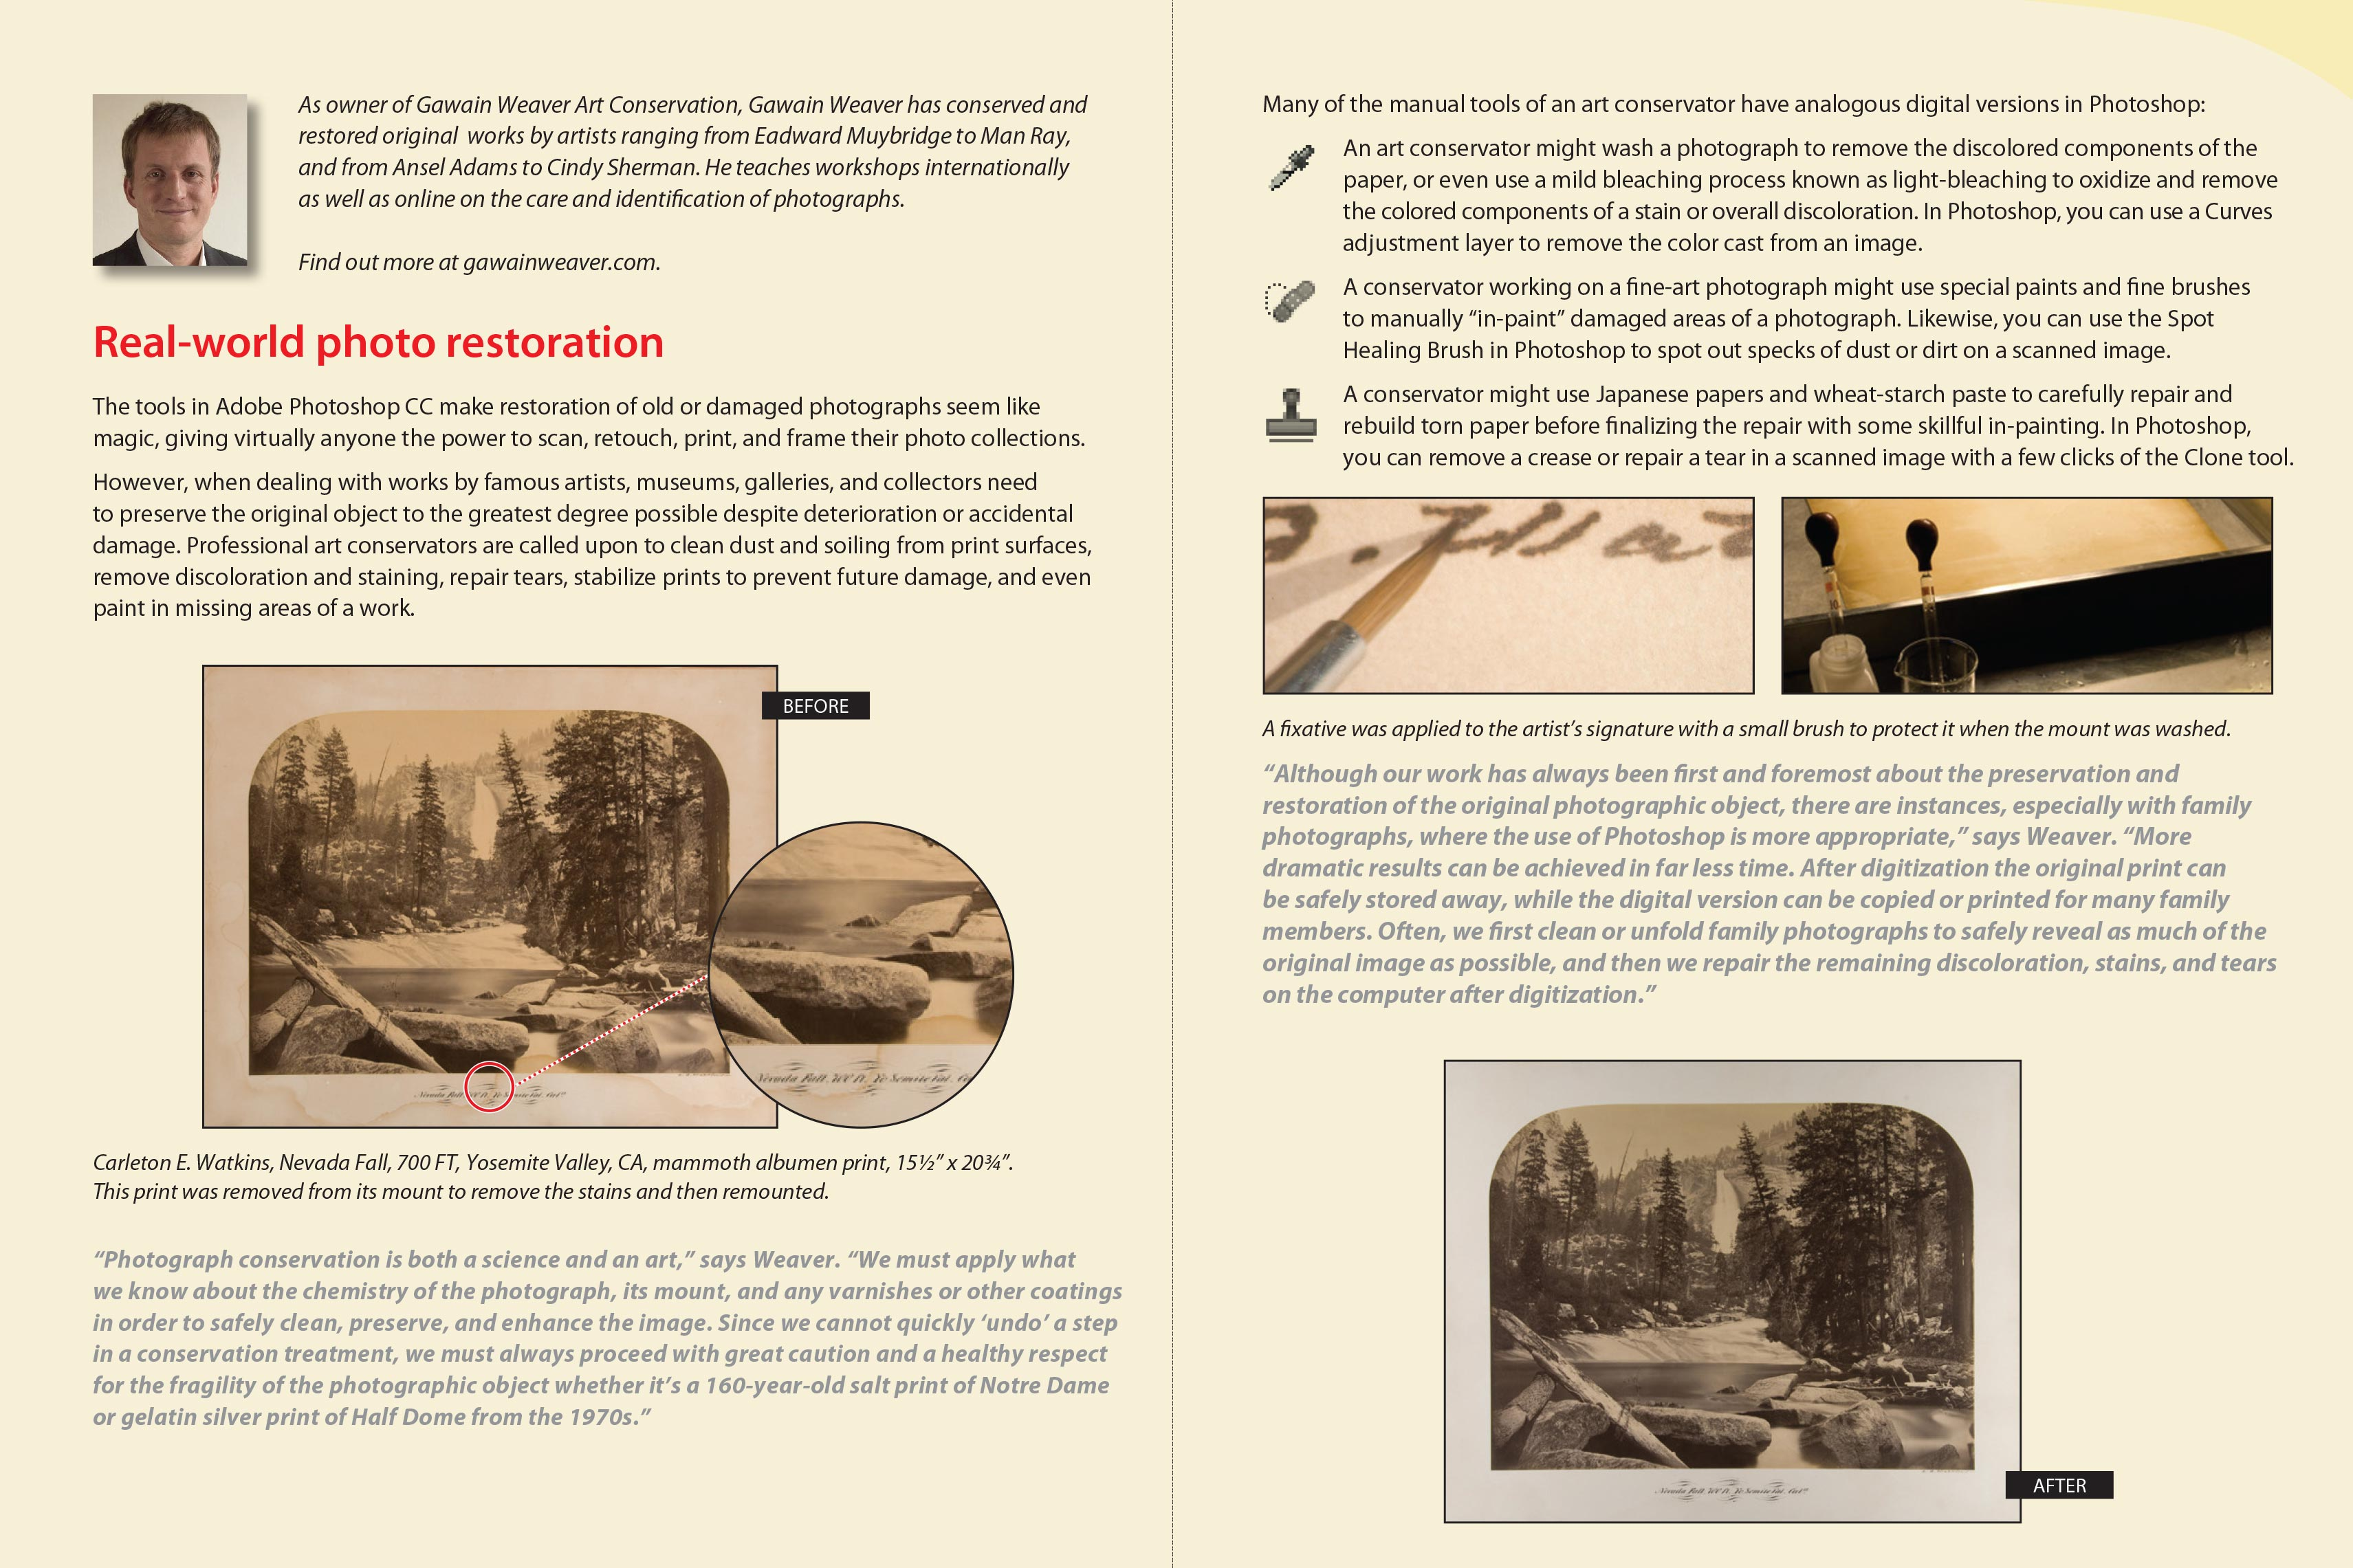 essay on ansel adams Free ansel adams papers, essays, and research papers.